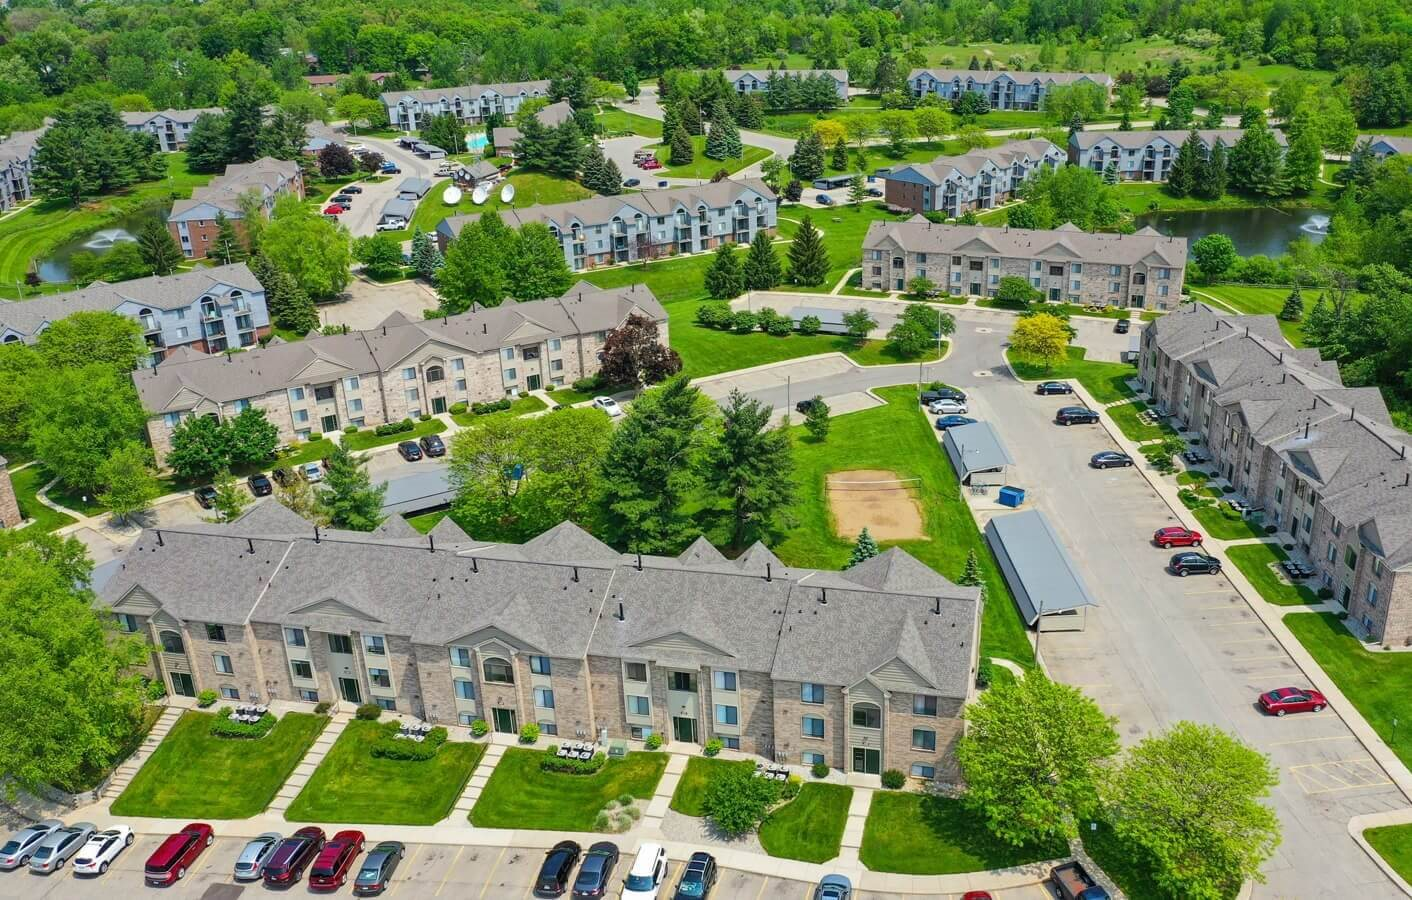 Aerial View of Community at Green Ridge Apartments, Grand Rapids